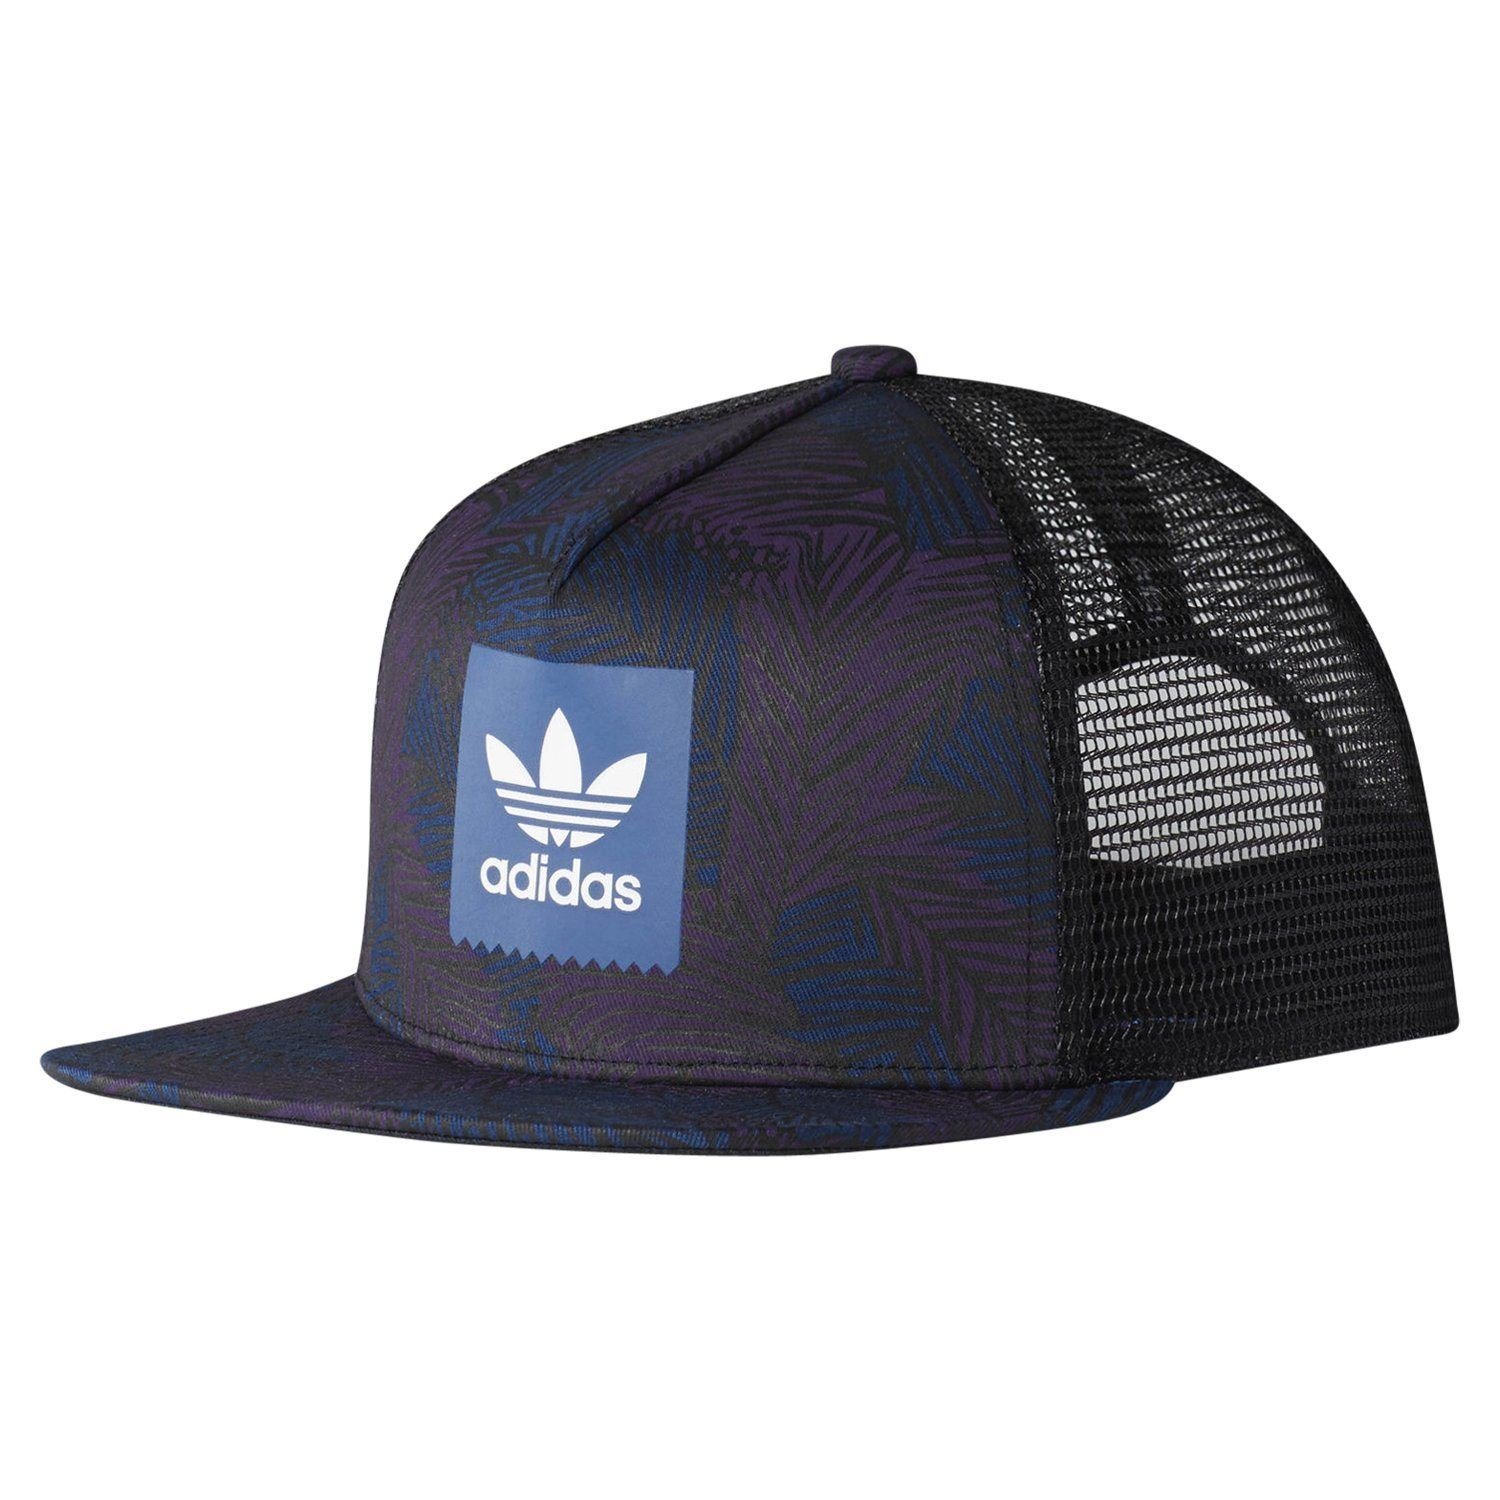 separation shoes ad27c ad792 Adidas Men39s Originals Cap The trefoil emblem is front and center